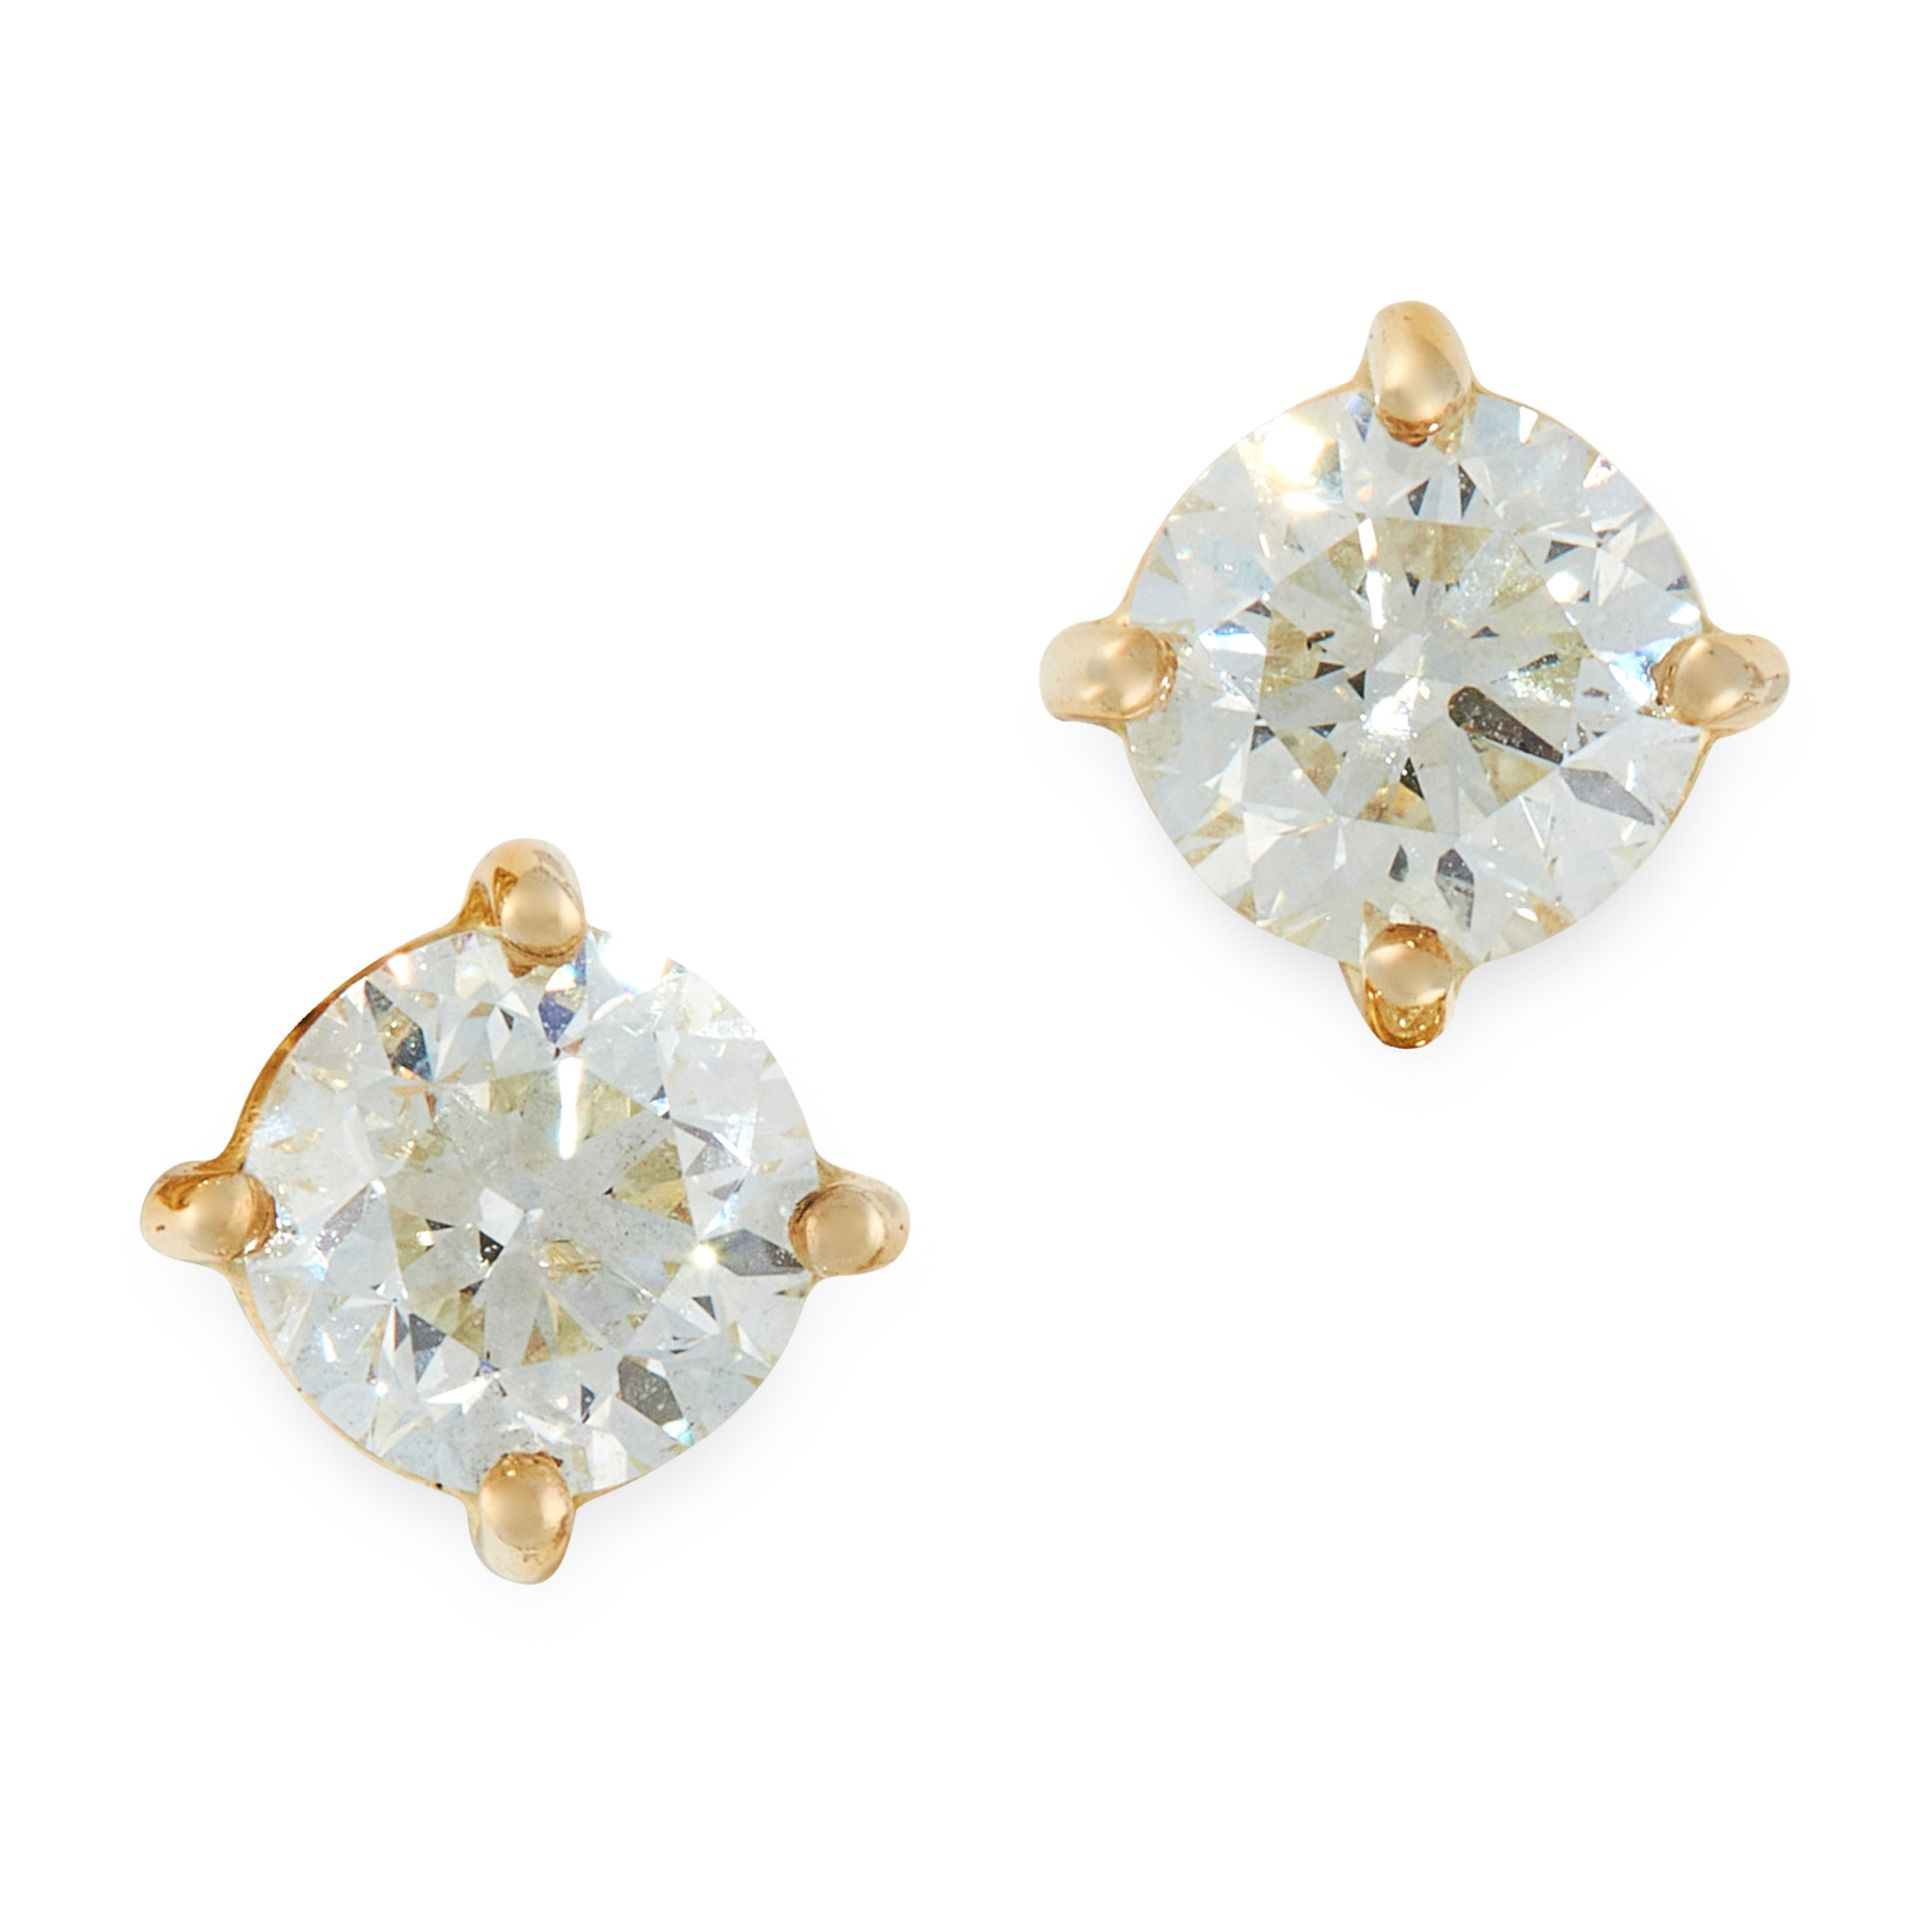 A PAIR OF DIAMOND STUD EARRINGS in 18ct yellow gold, each set with a round cut diamond, all